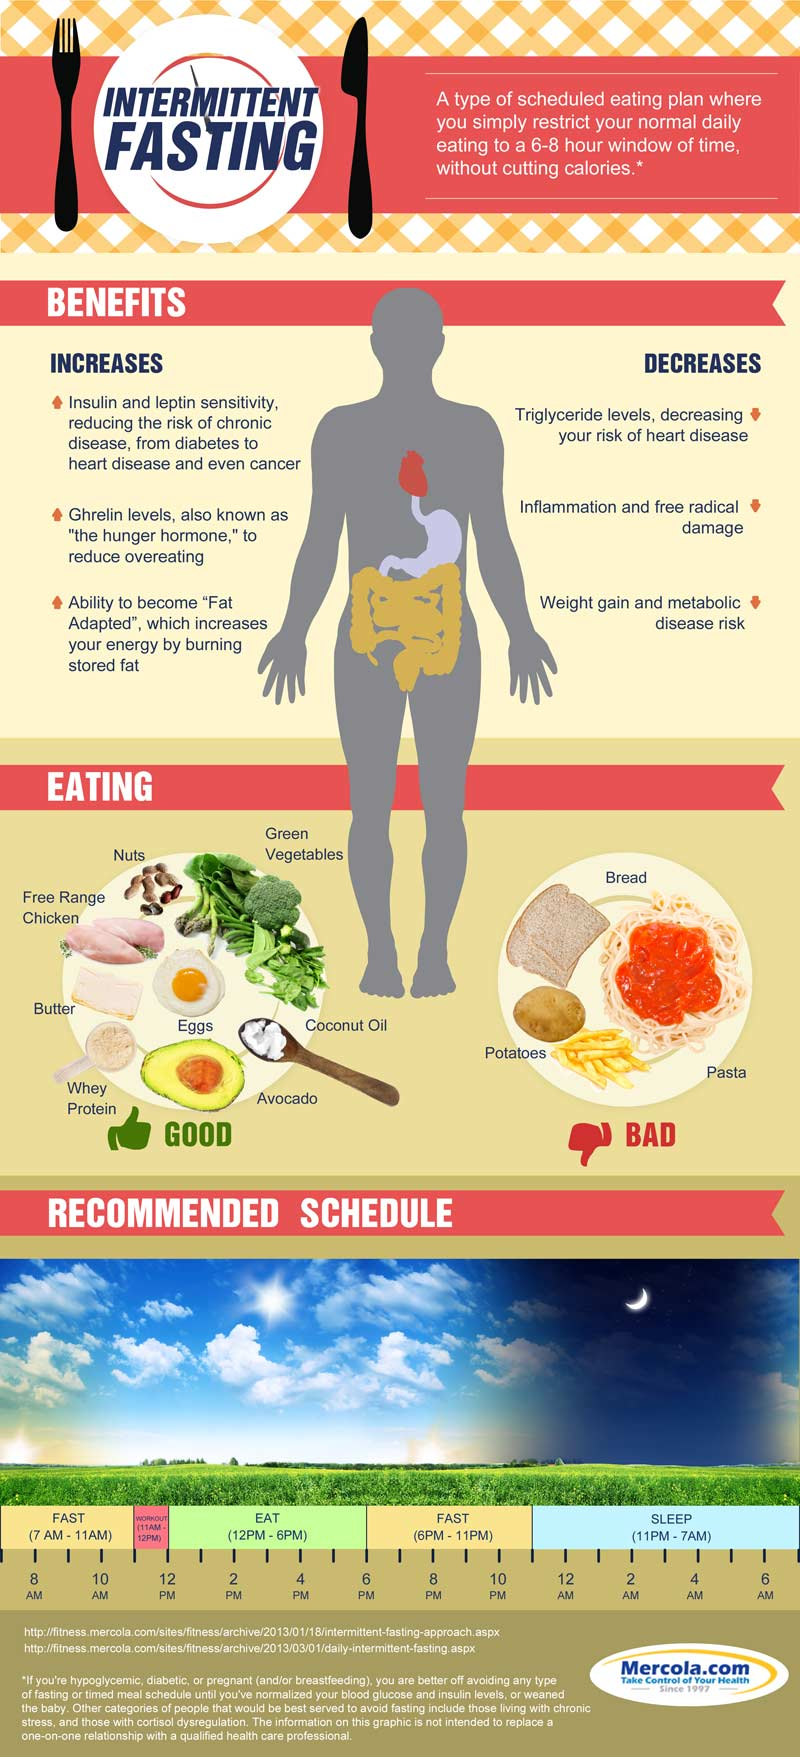 About Intermittent Fasting